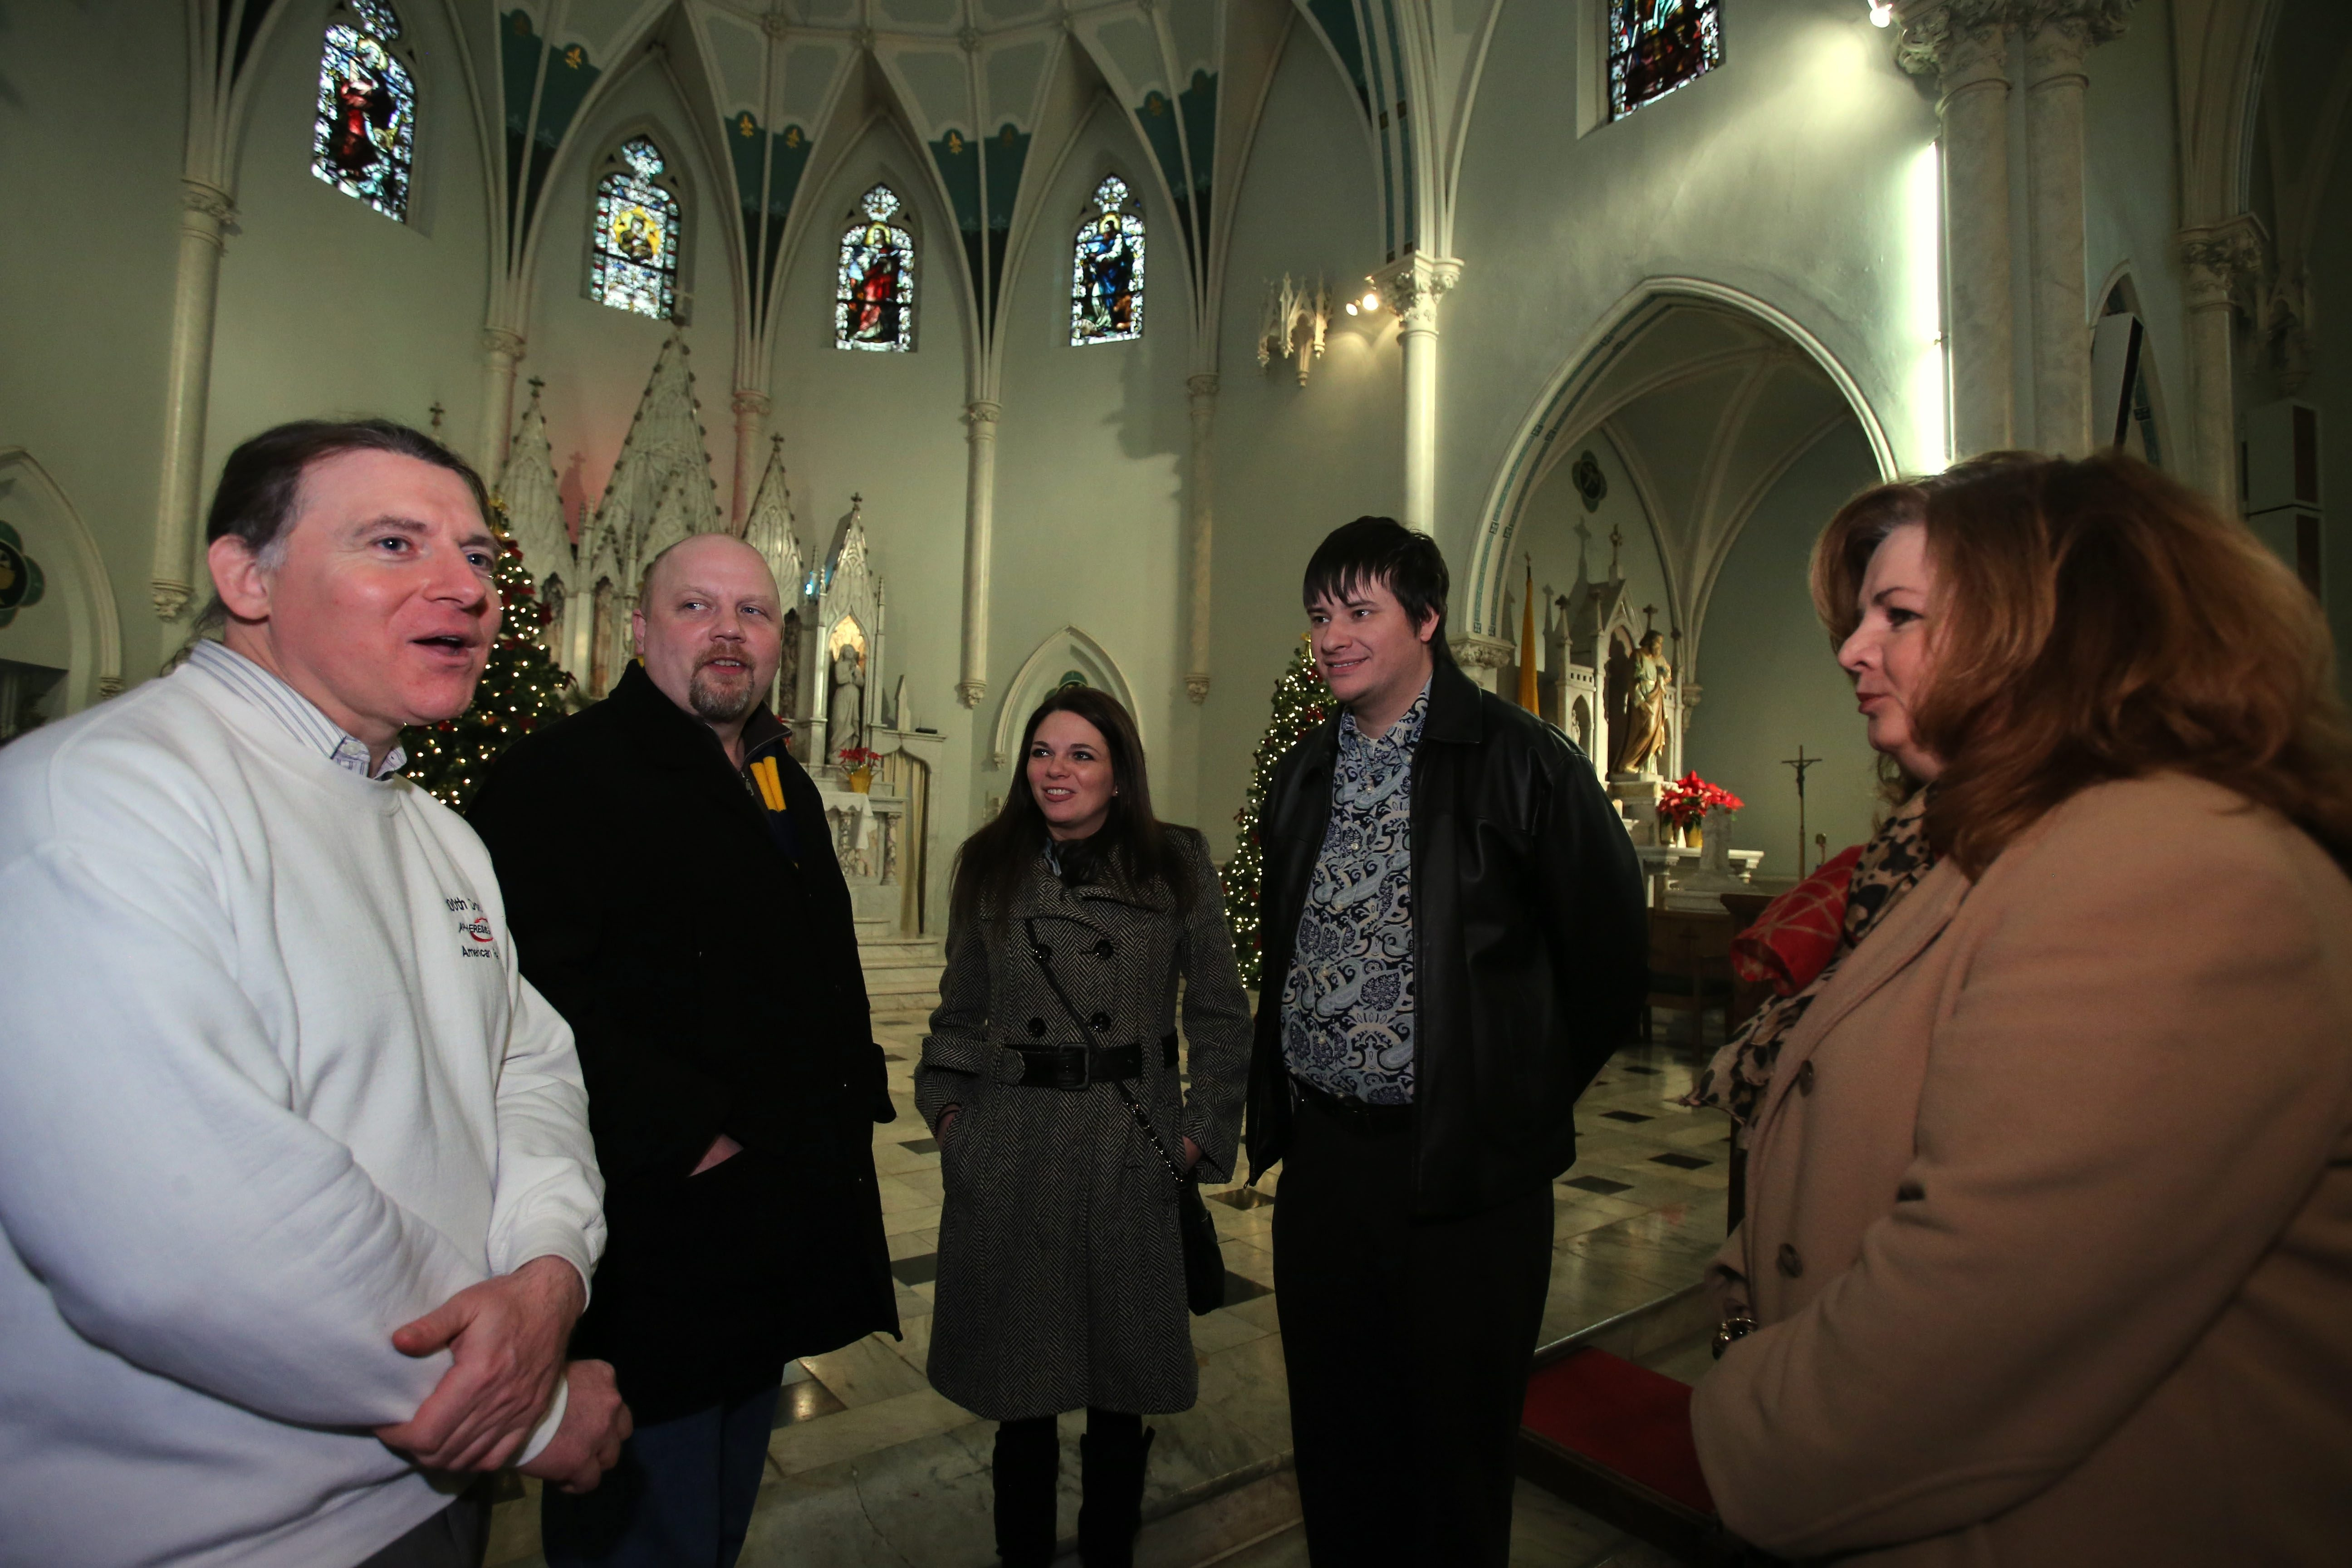 'Mass Mob' organizers, left to right, Alan Oberst, Chris Byrd, Danielle Huber and Greg Witul talk with Darlene Gerevics-Koch, at Our Lady of Perpetual Help Church.